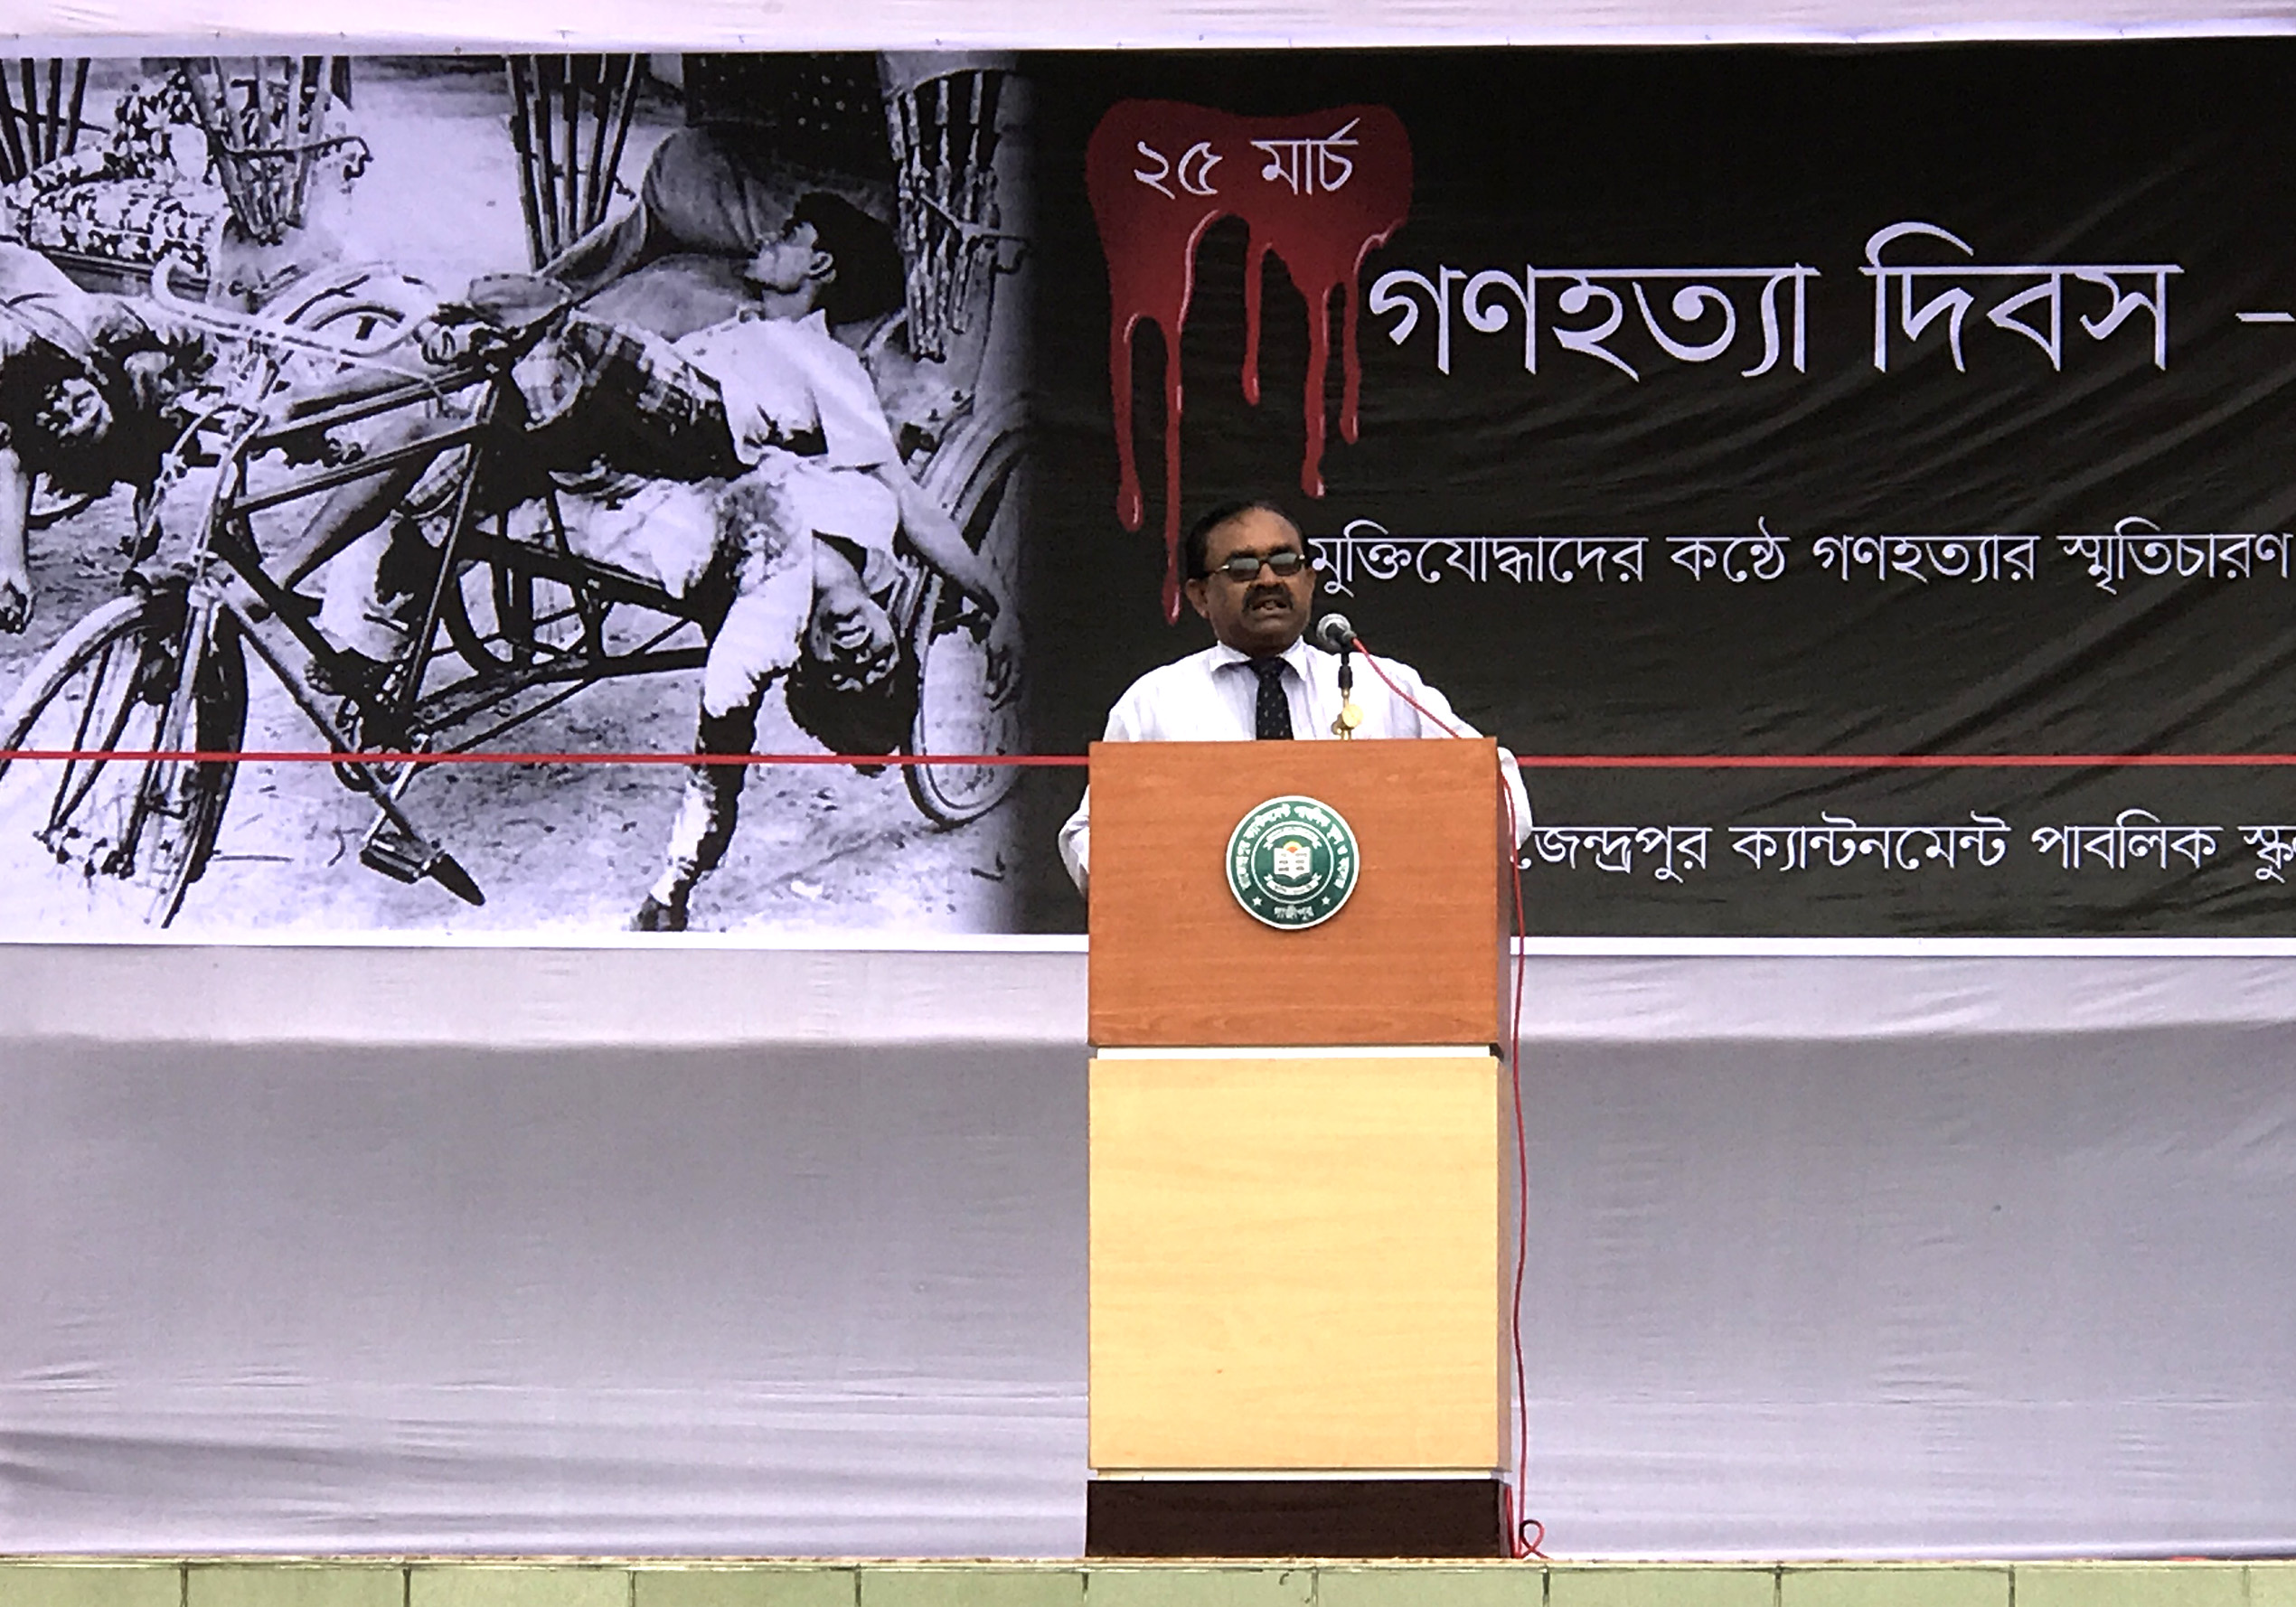 Discussion on Genocide Day, 2018